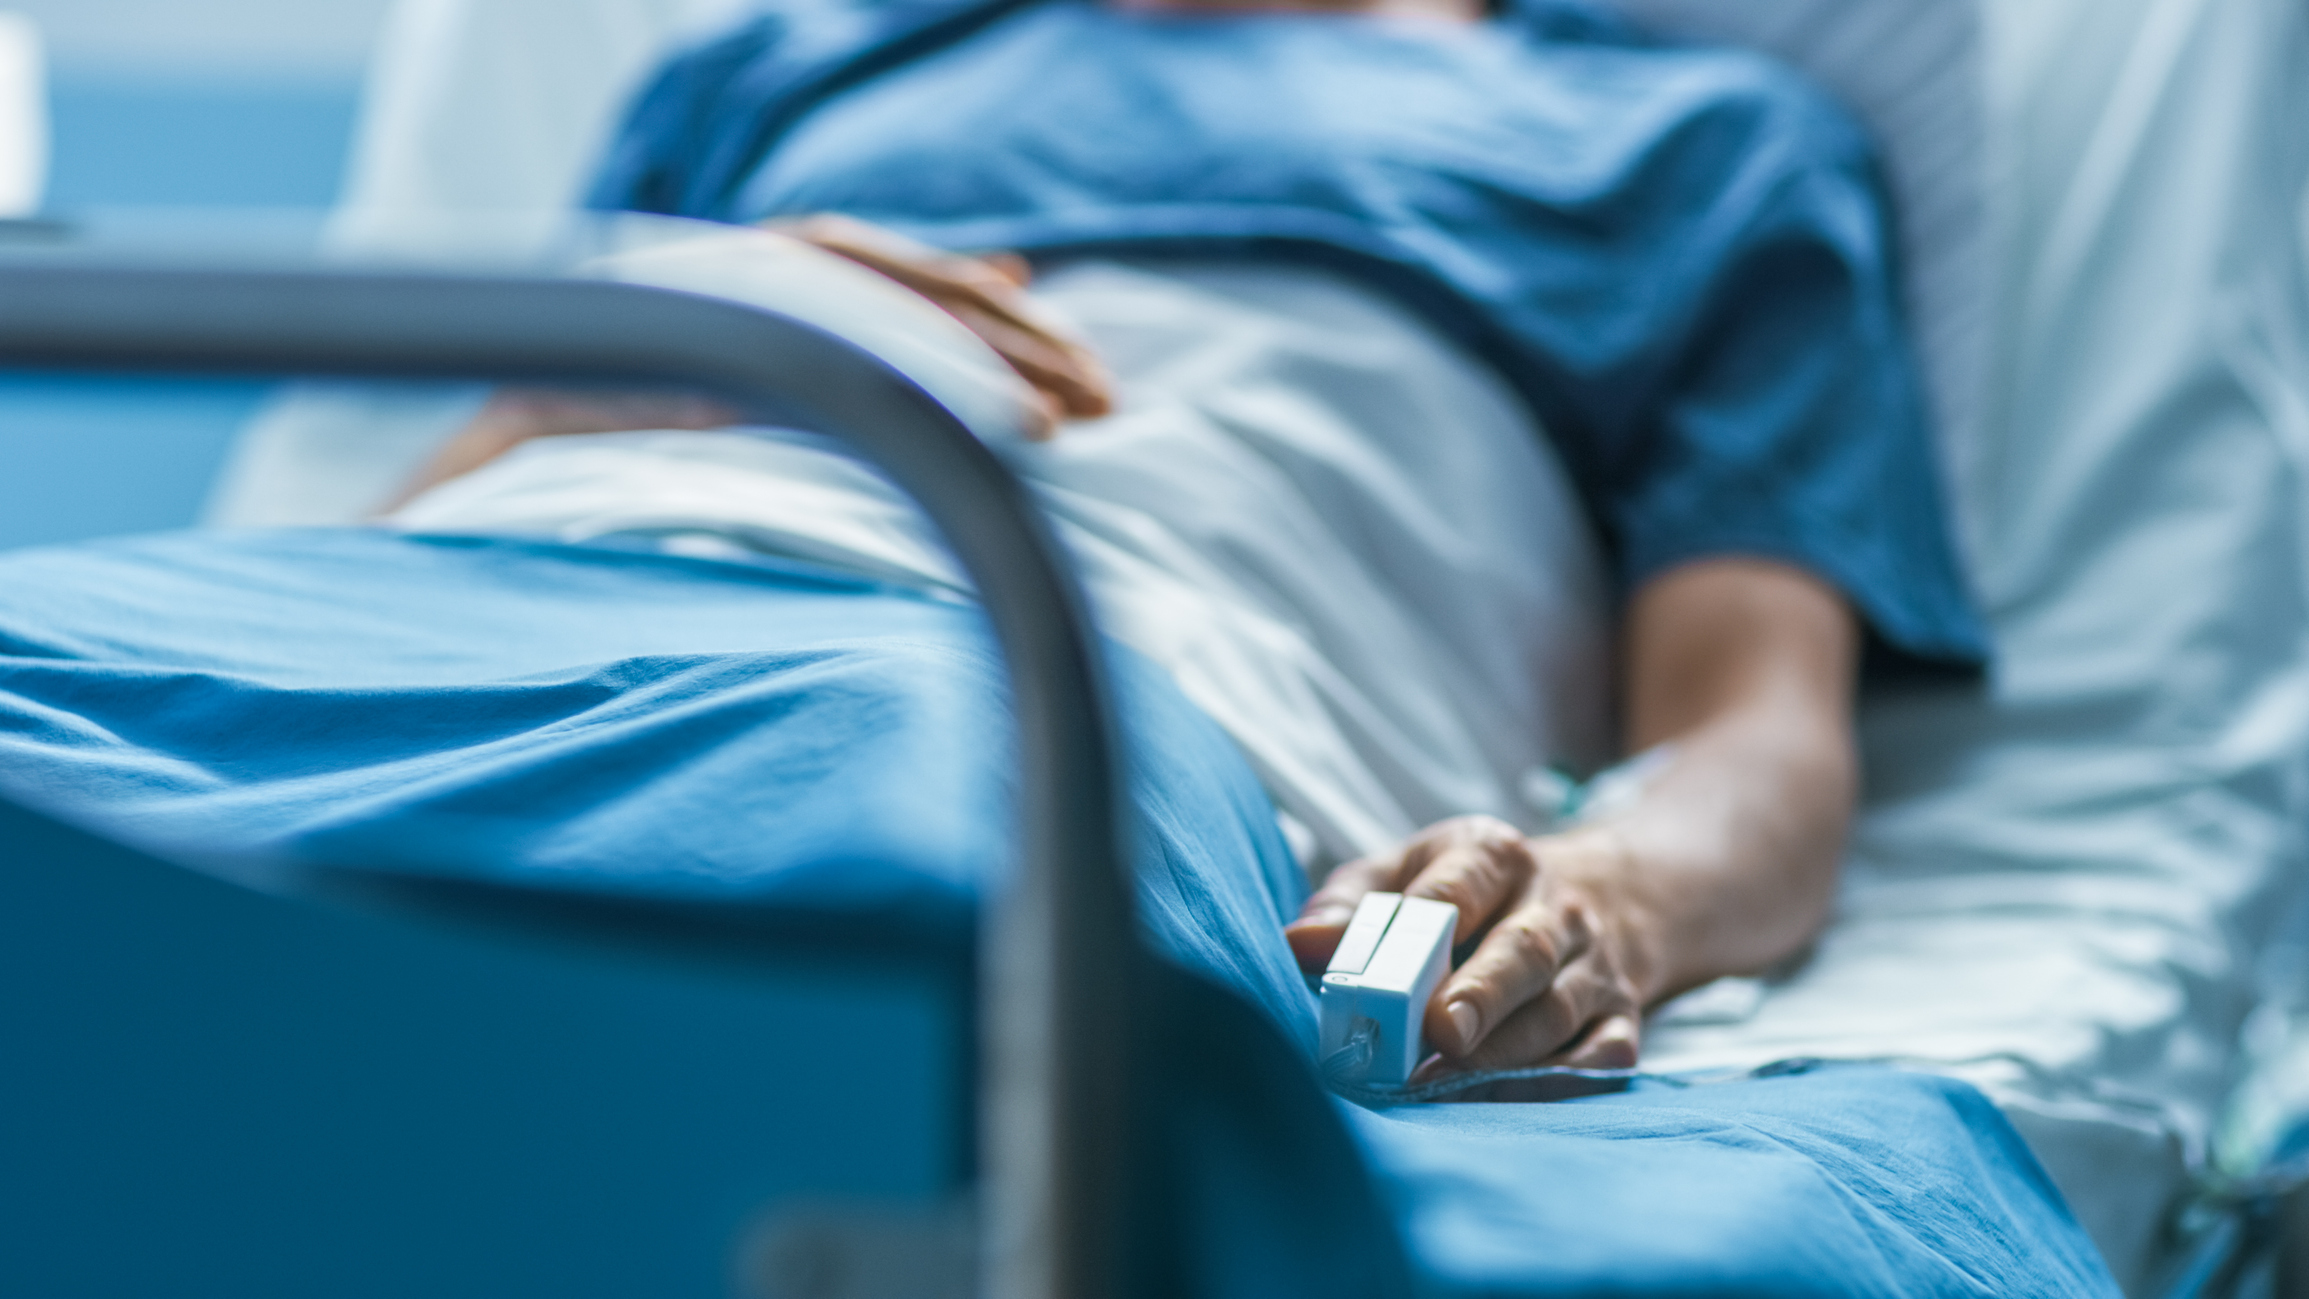 Stock image of patient in hospital bed